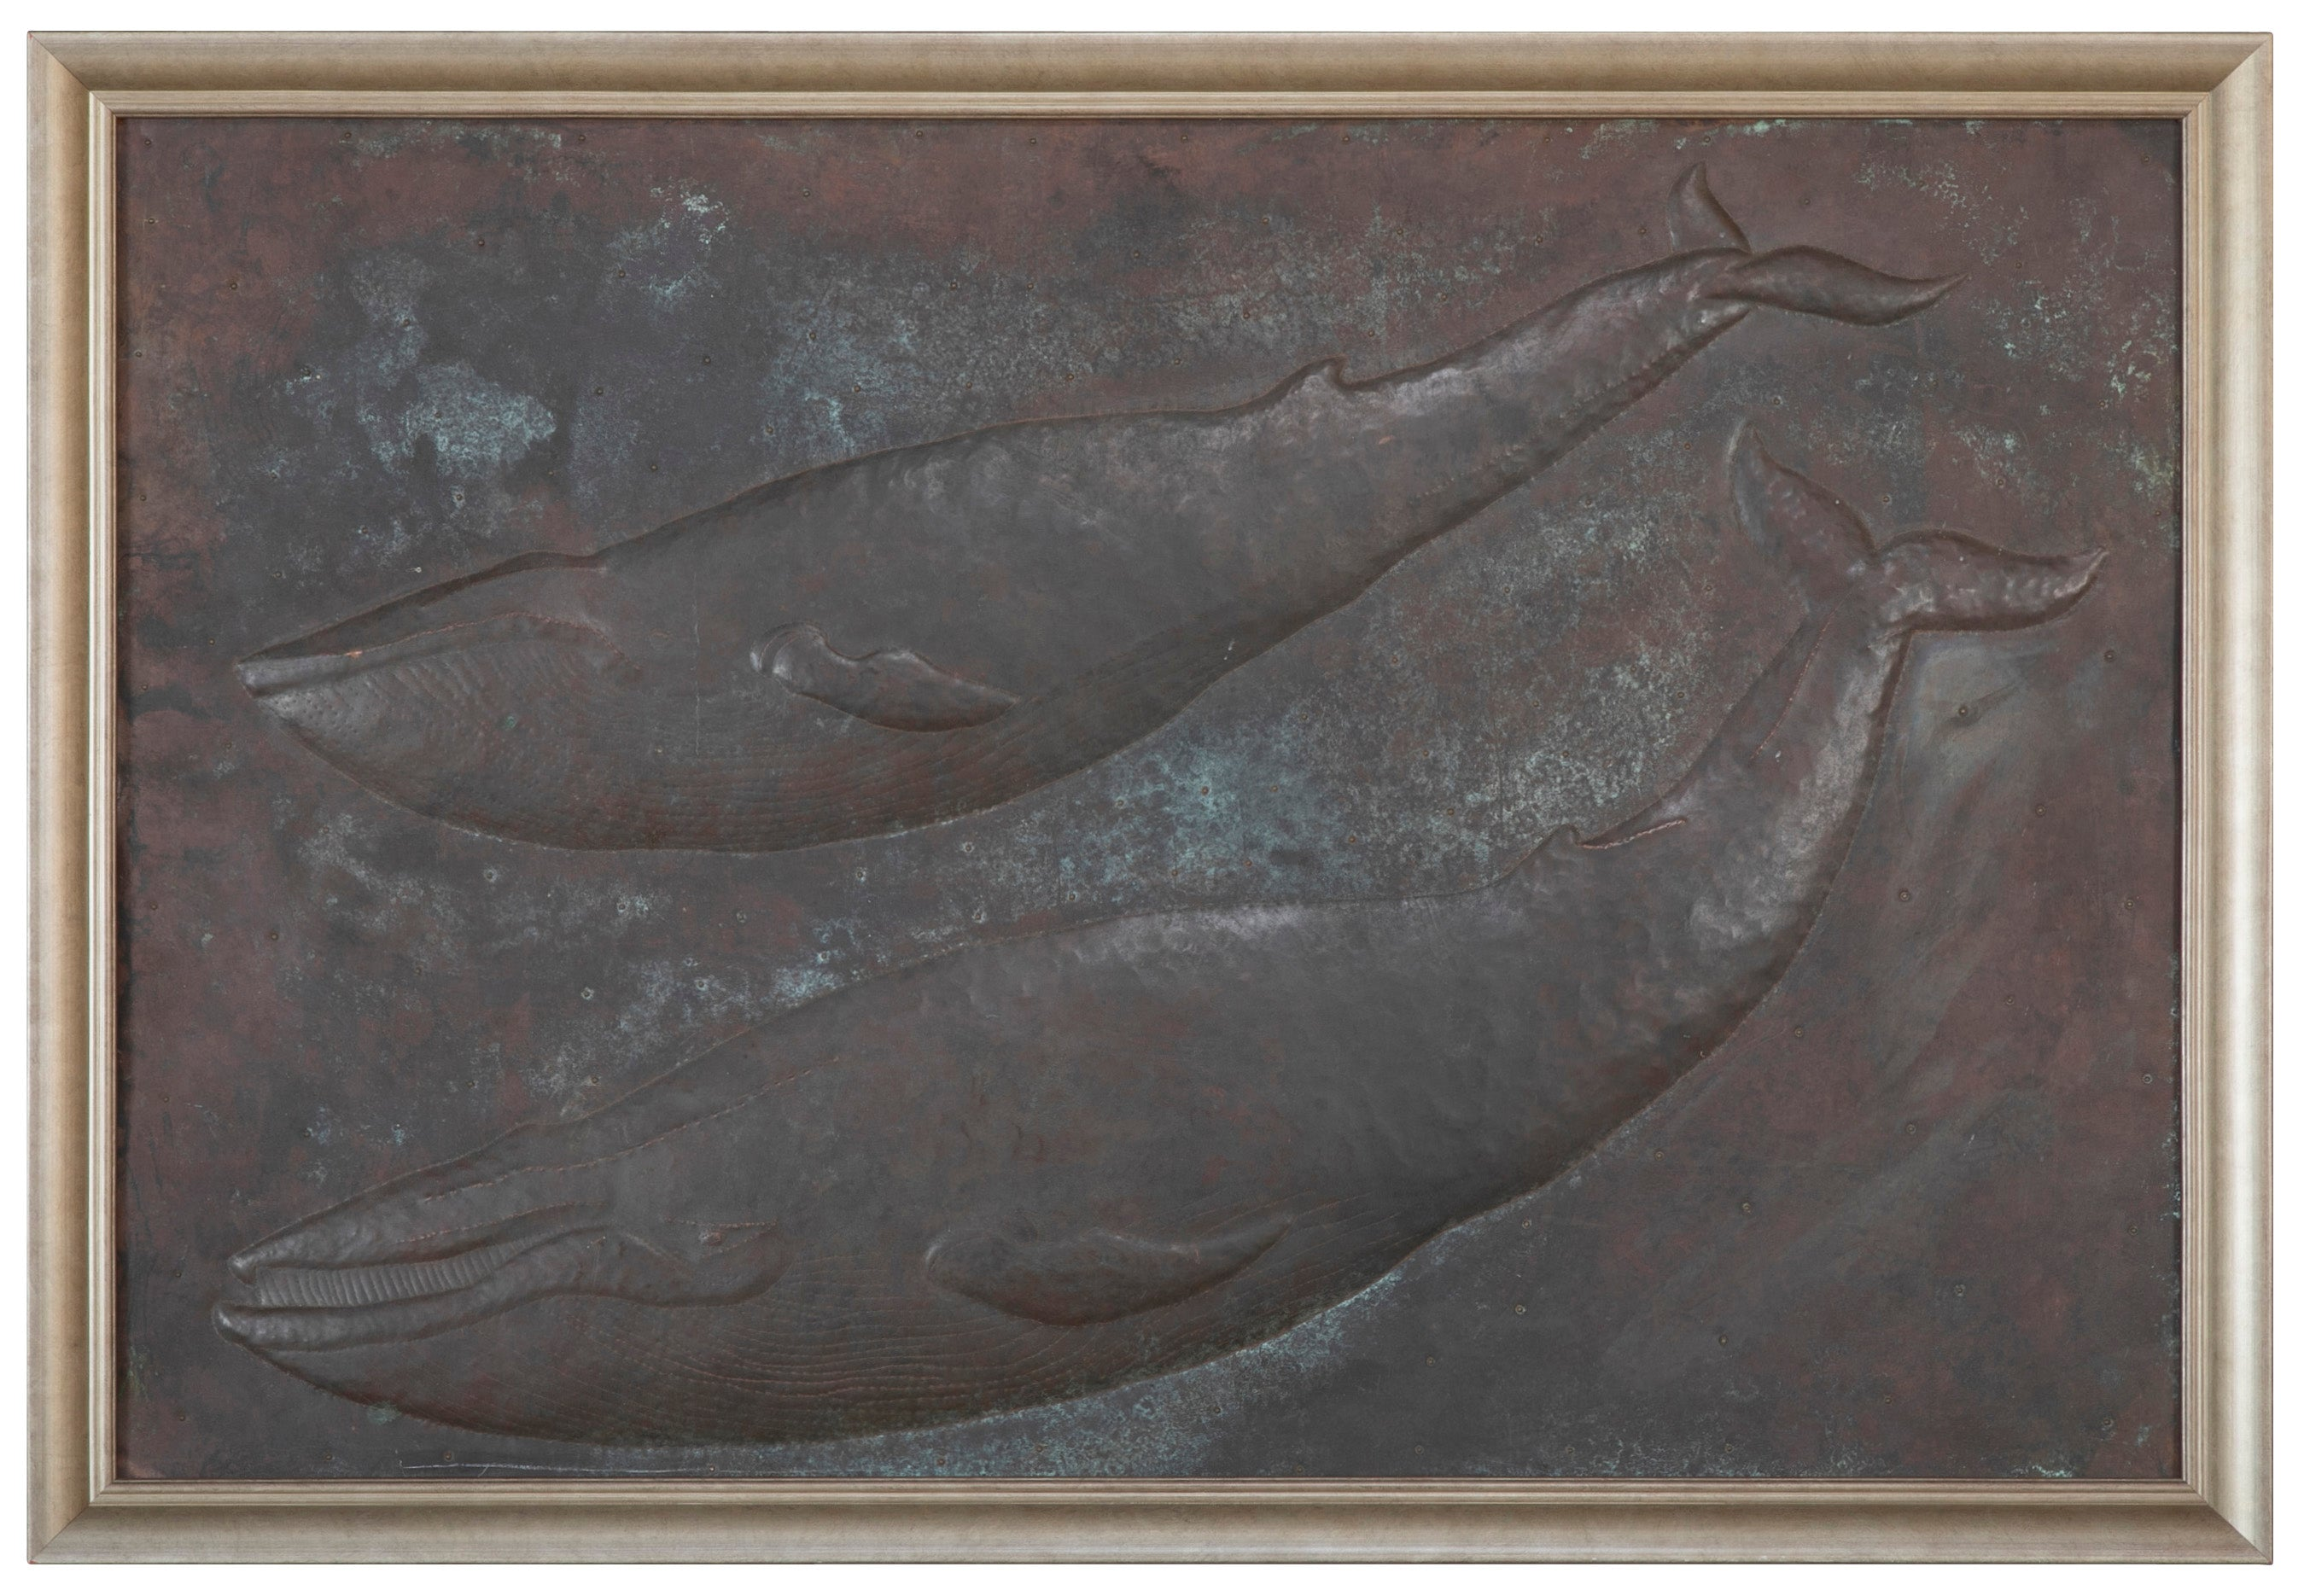 Copper Repousse Plaque of 2 Baleen Whales